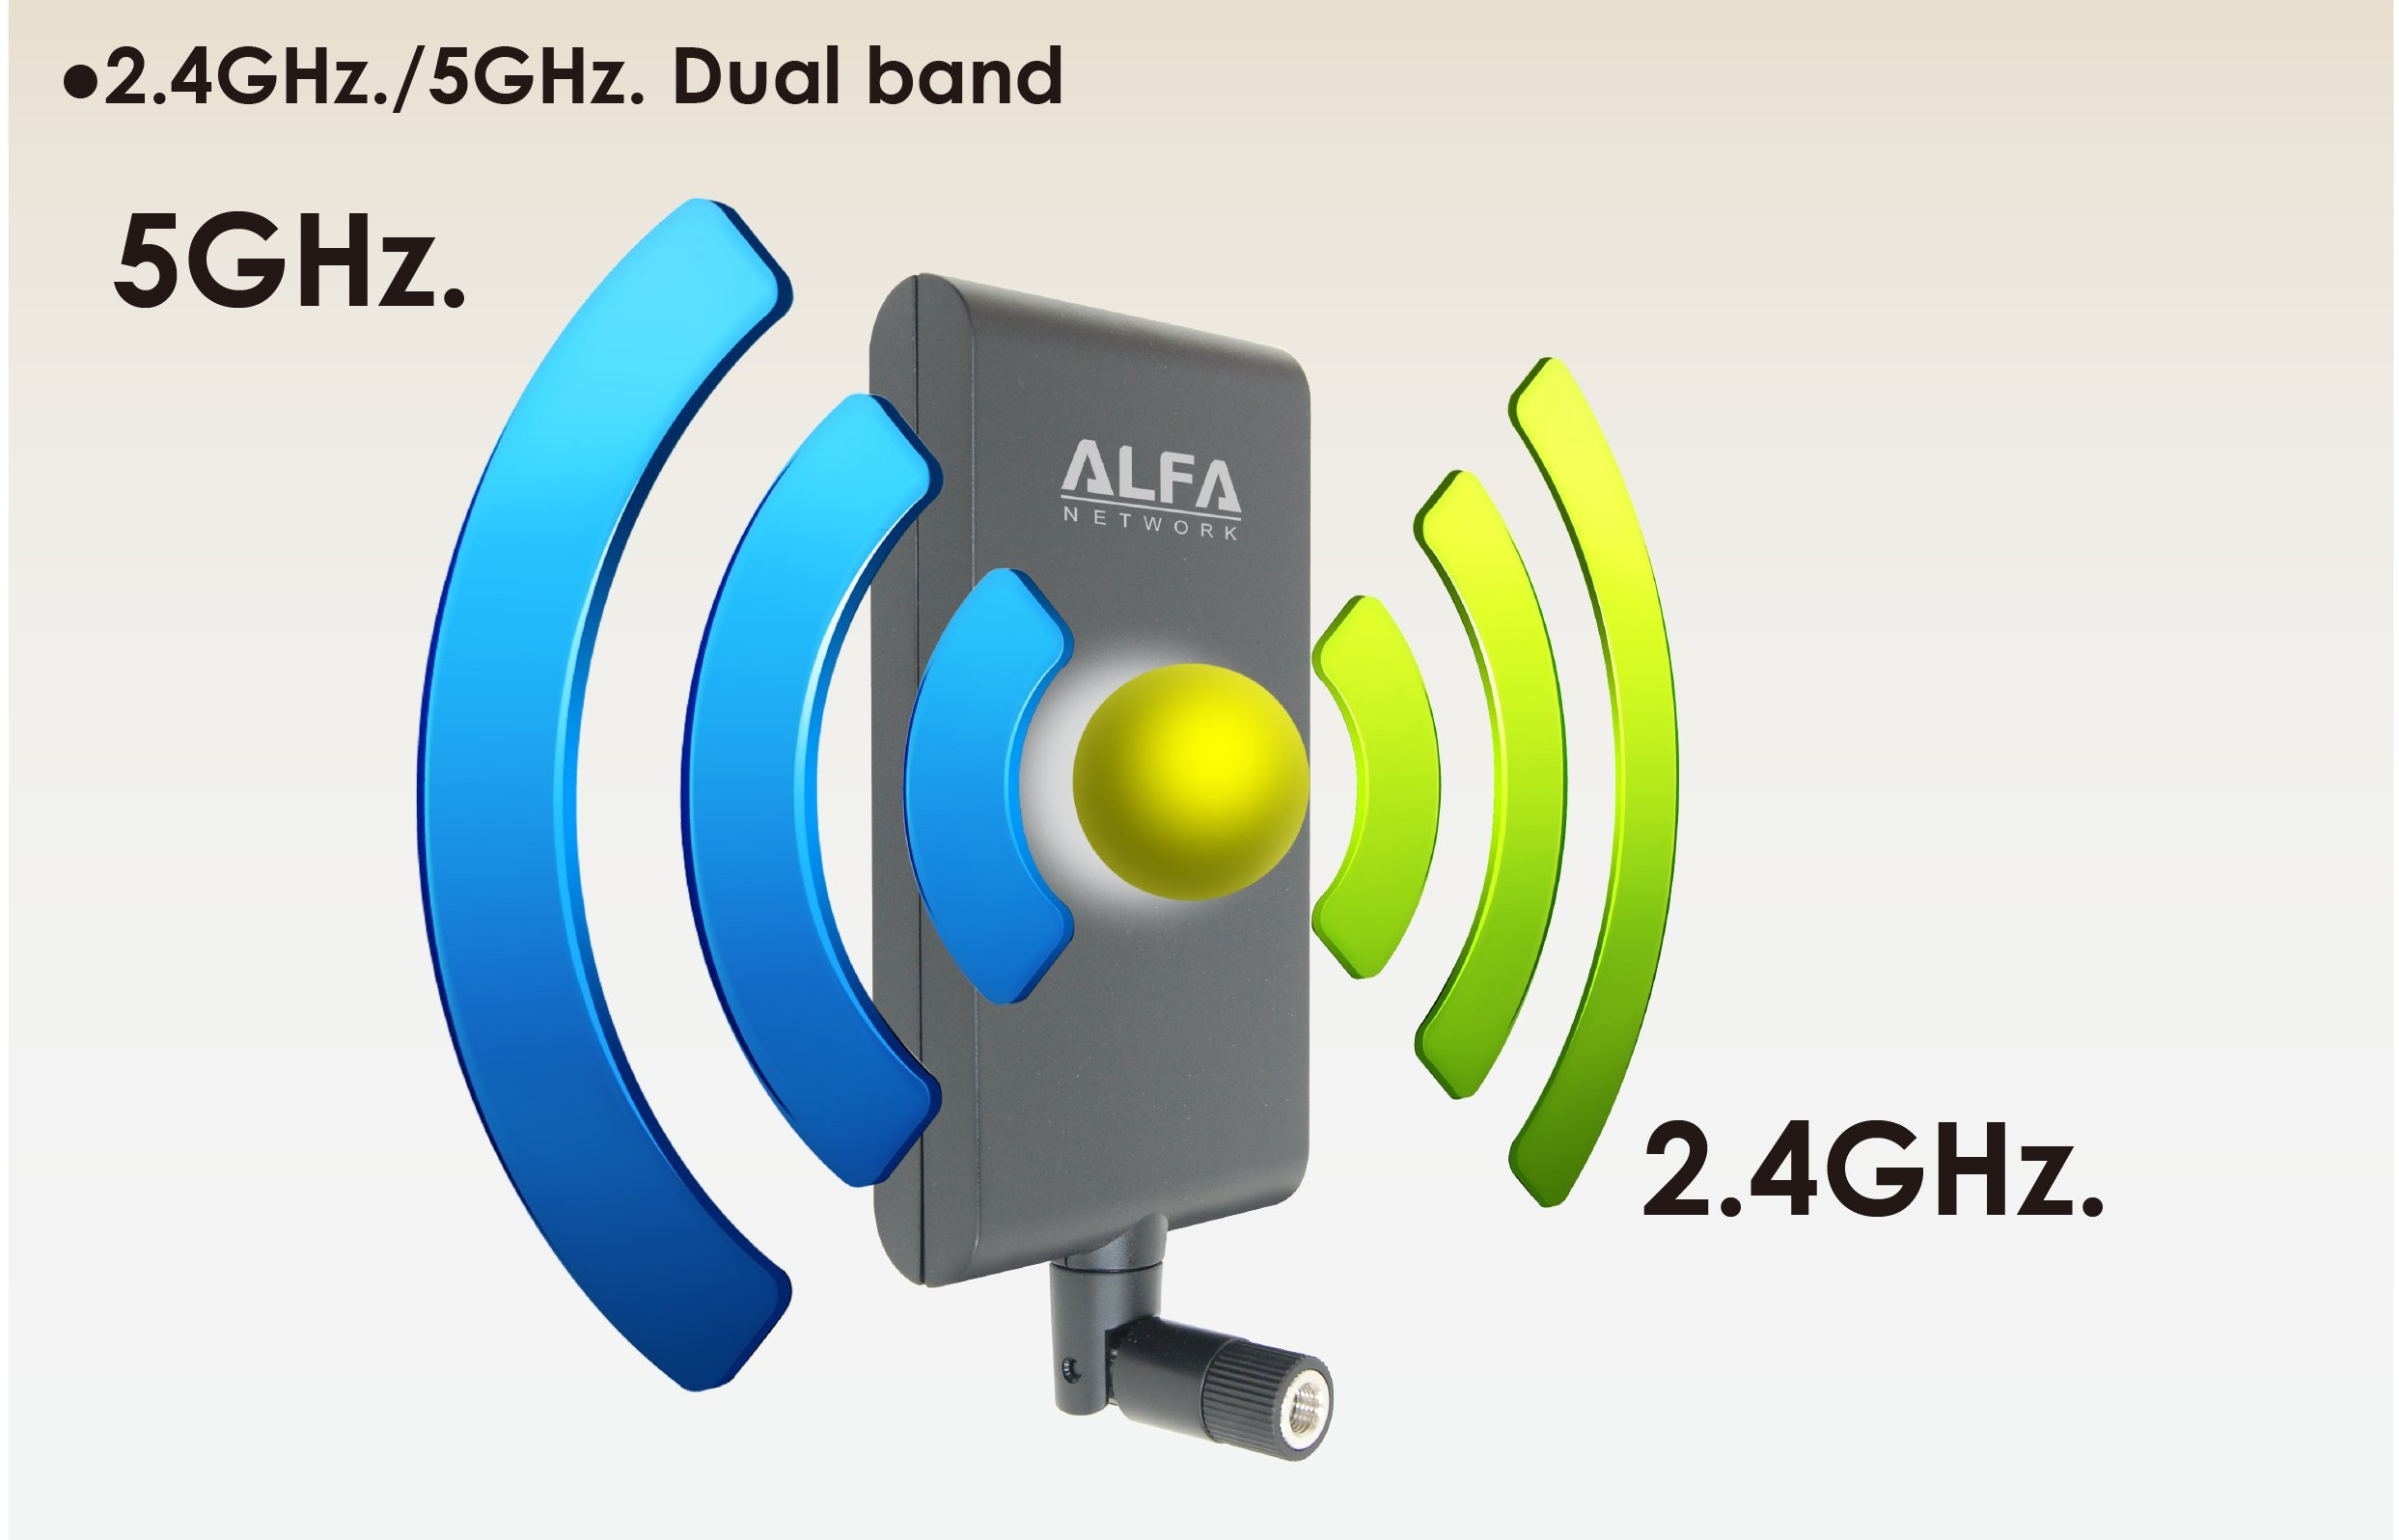 Alfa APA-M25 dual band 2.4GHz/5GHz 10dBi high gain directional indoor panel antenna with RP-SMA connector (compare to Asus WL-ANT-157) by ALFA (Image #3)